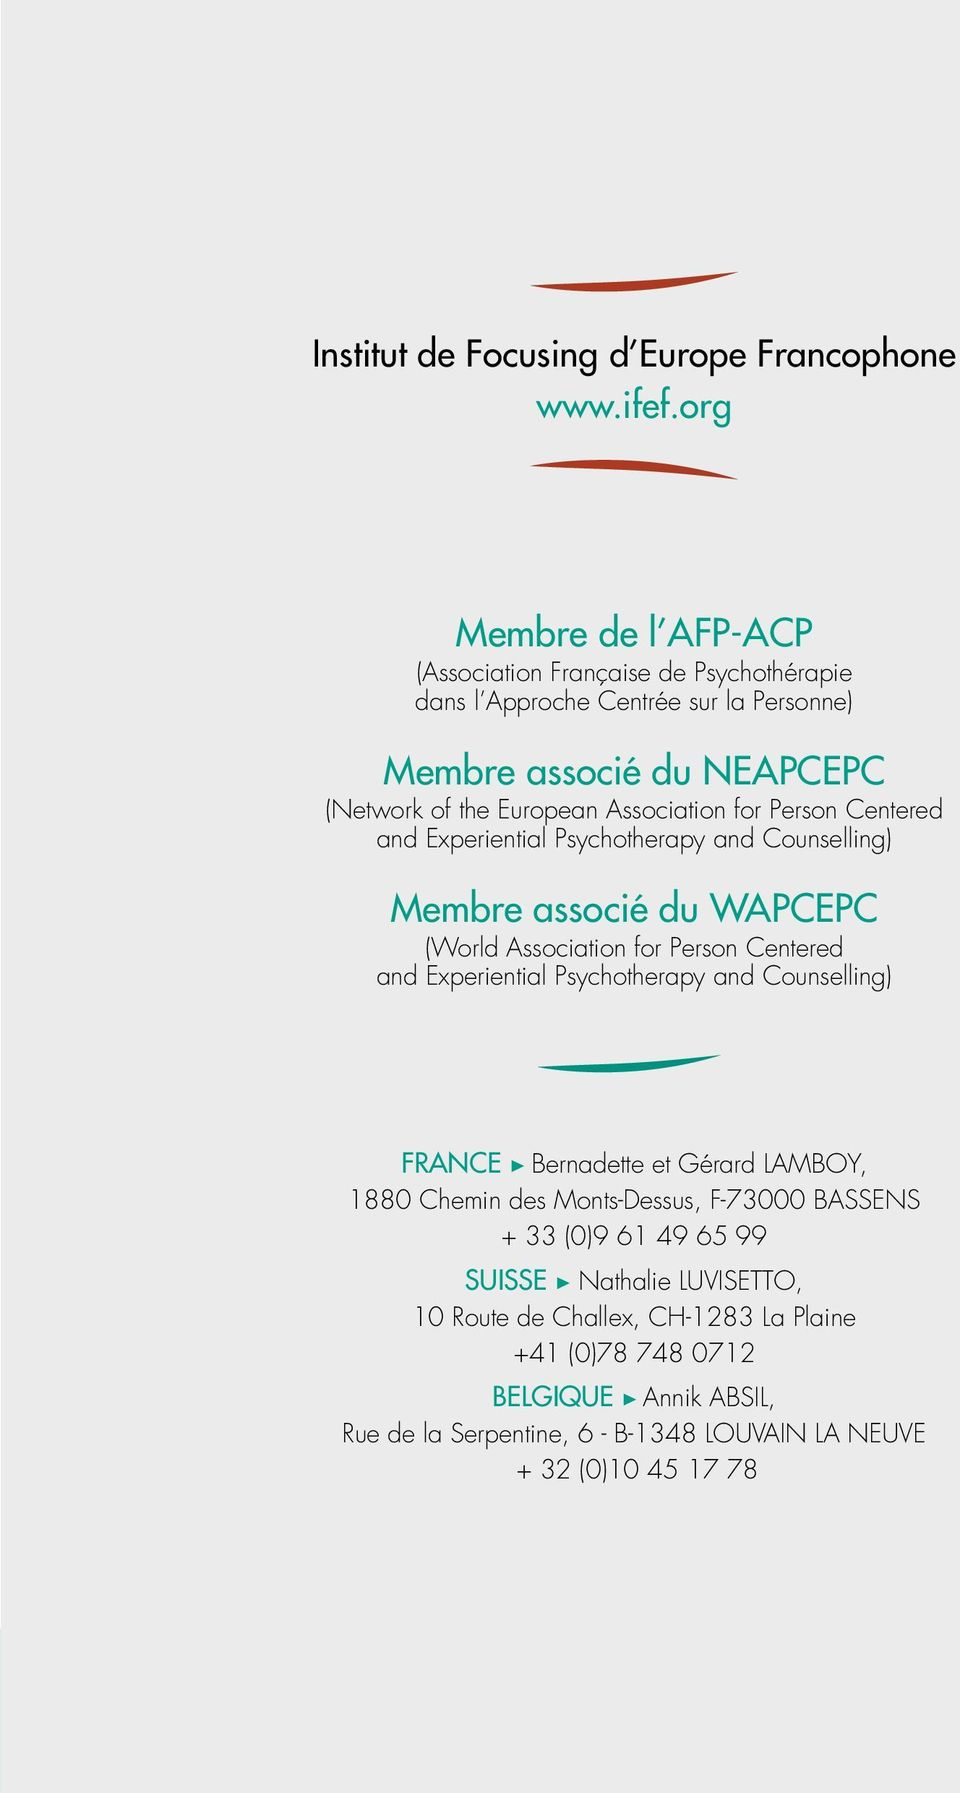 for Person Centered and Experiential Psychotherapy and Counselling) Membre associé du WAPCEPC (World Association for Person Centered and Experiential Psychotherapy and